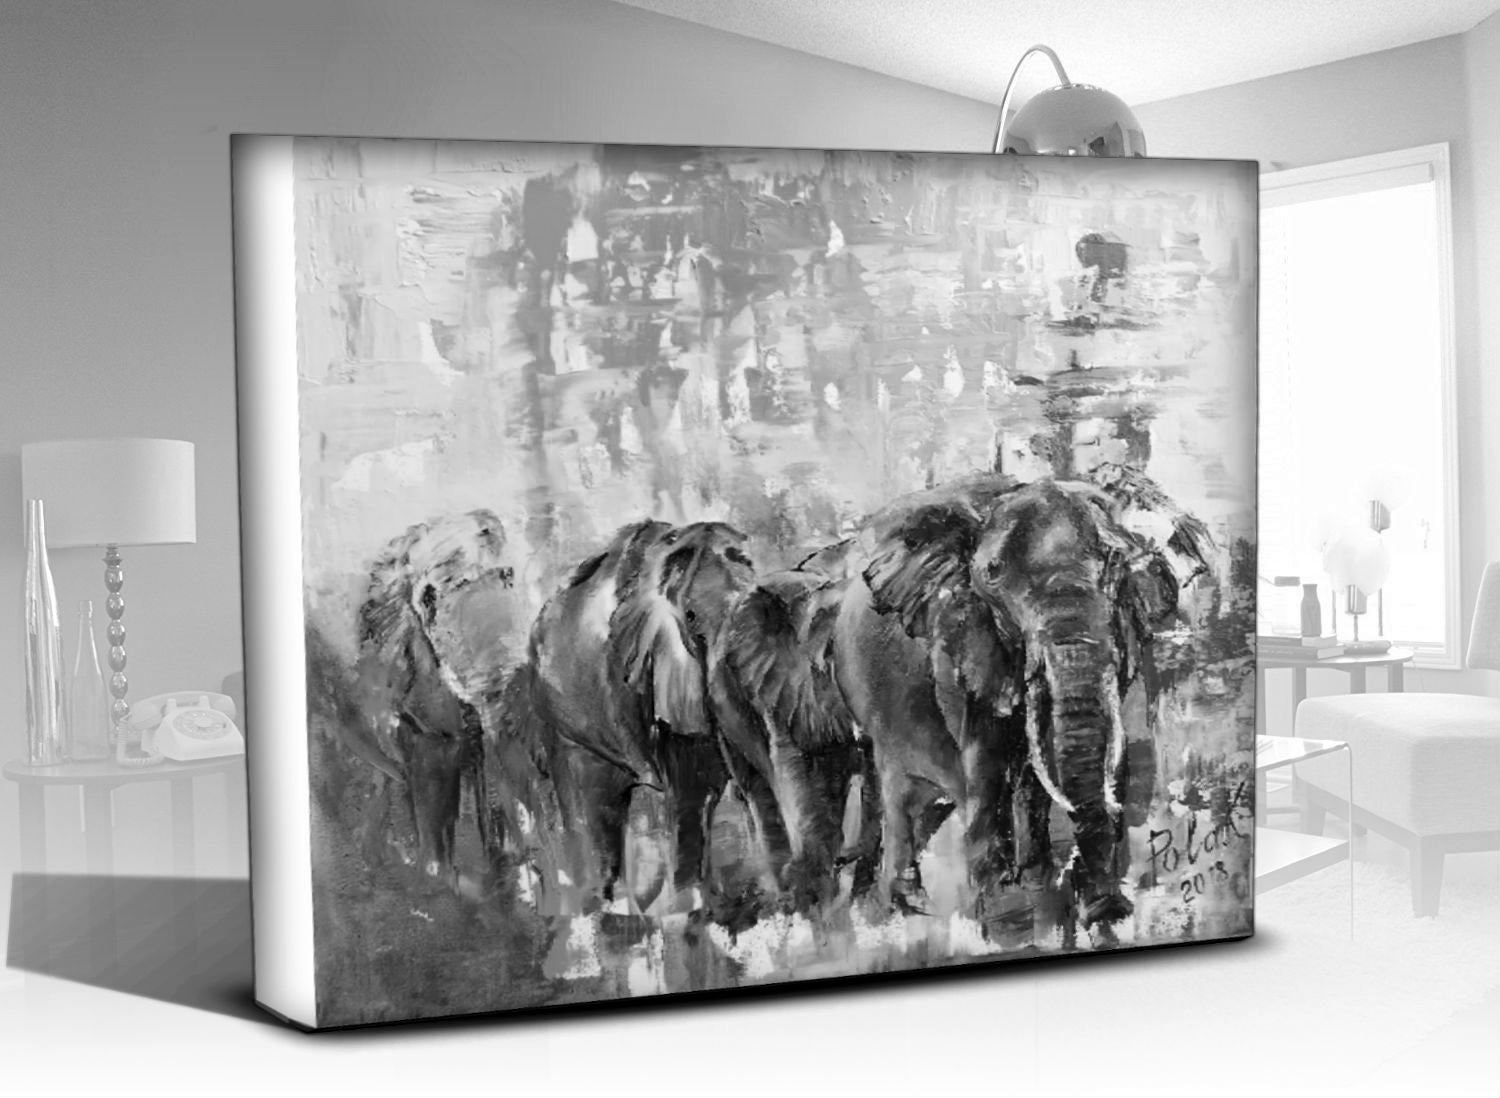 Elephants wall art print on canvas wabi sabi black and white art from contemporary painting original minimalist decor for animal lovers